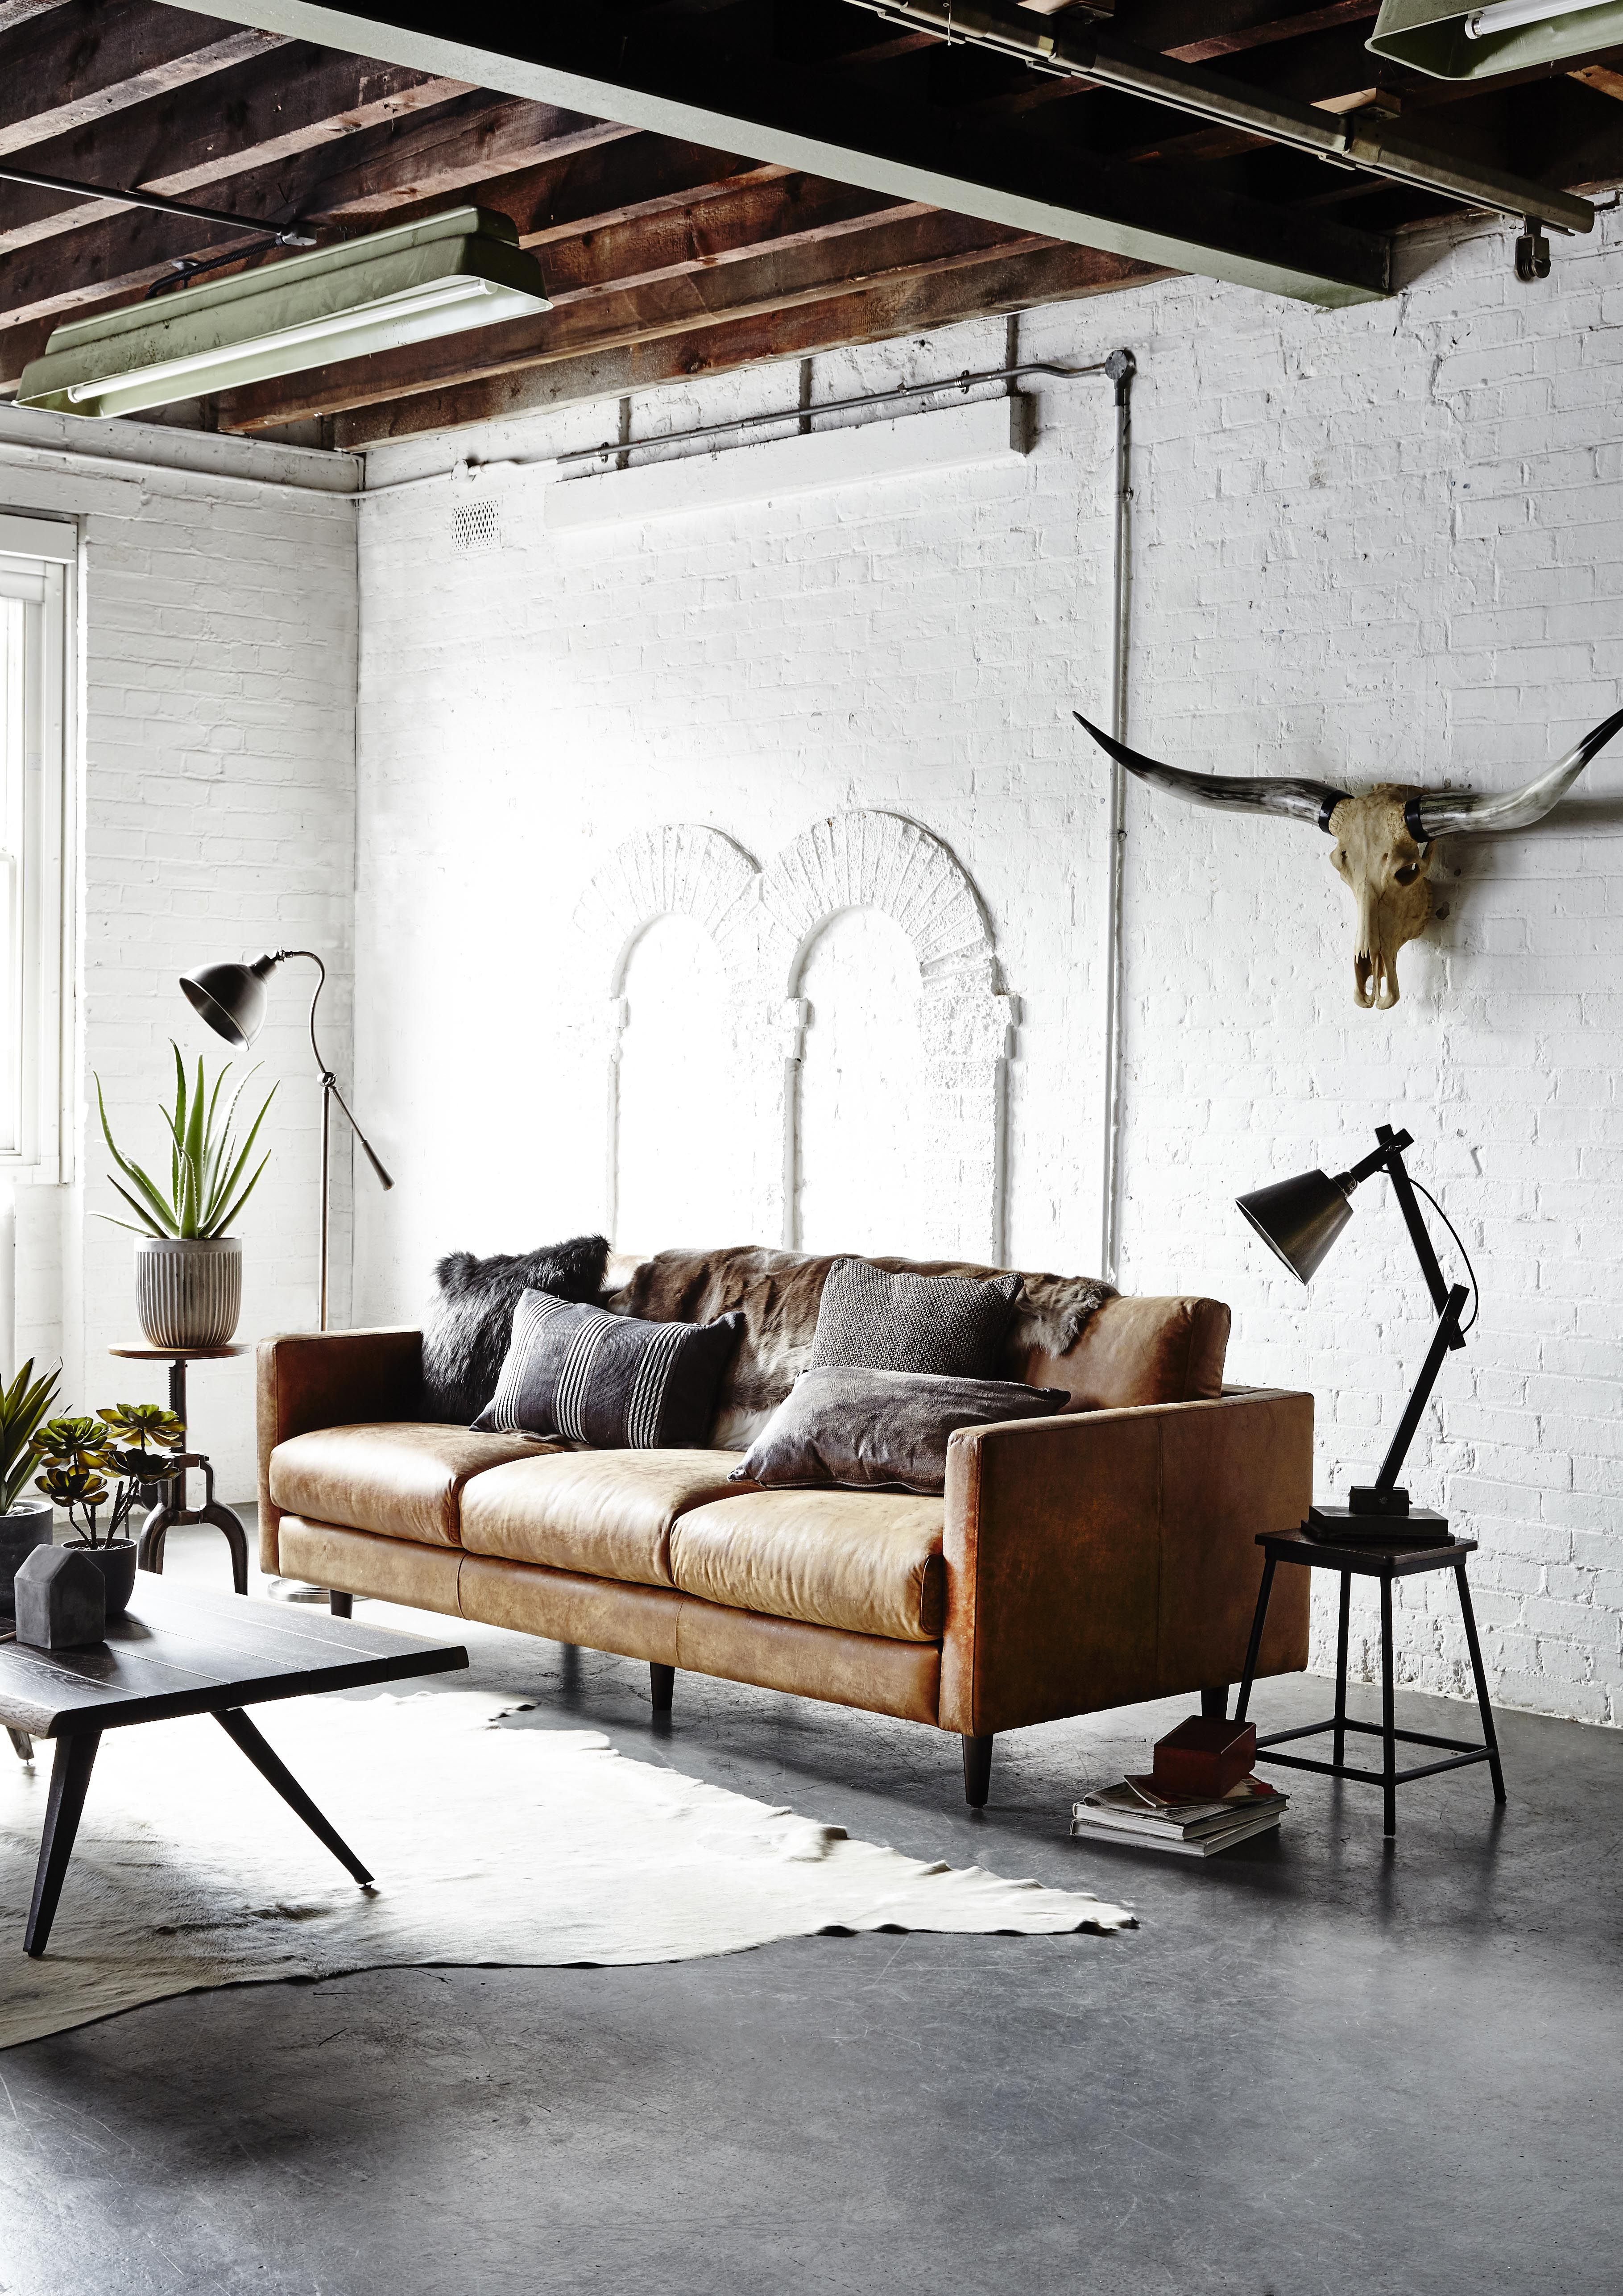 Bilder Wohnzimmer Industrie Mix Leather With Metal For A Hardwearing Industrial Look